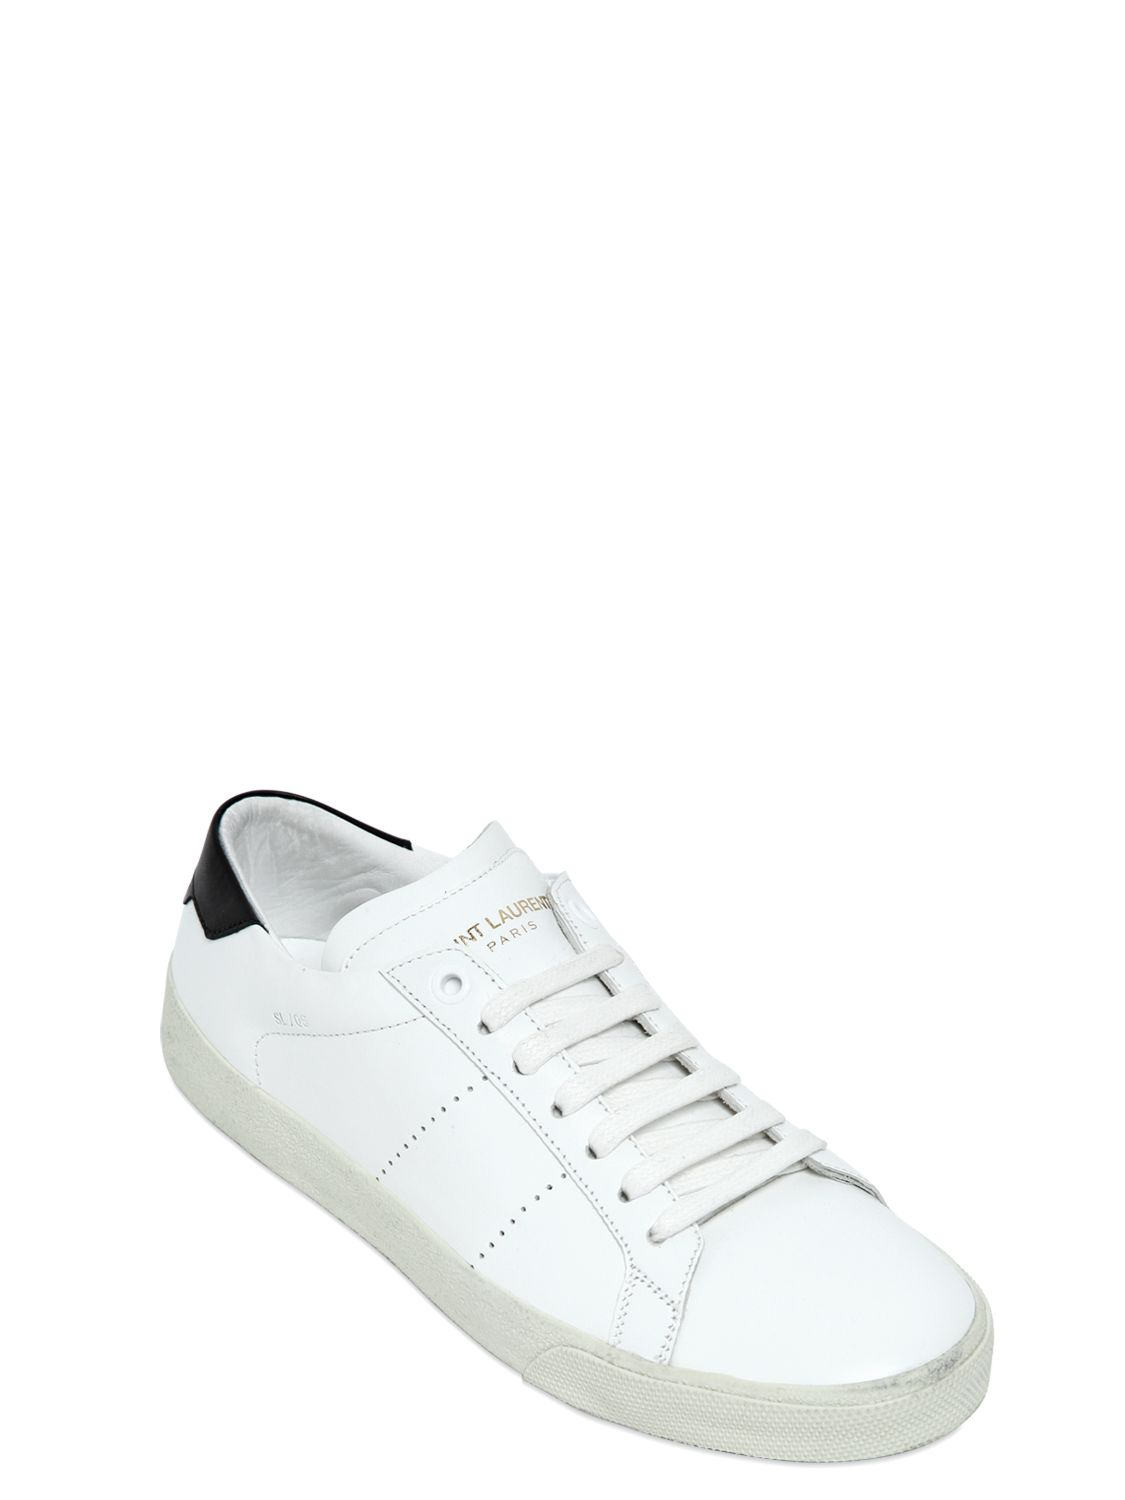 nicekicks for sale Saint Laurent White Court Classic Sneakers low price fee shipping PTJ2t